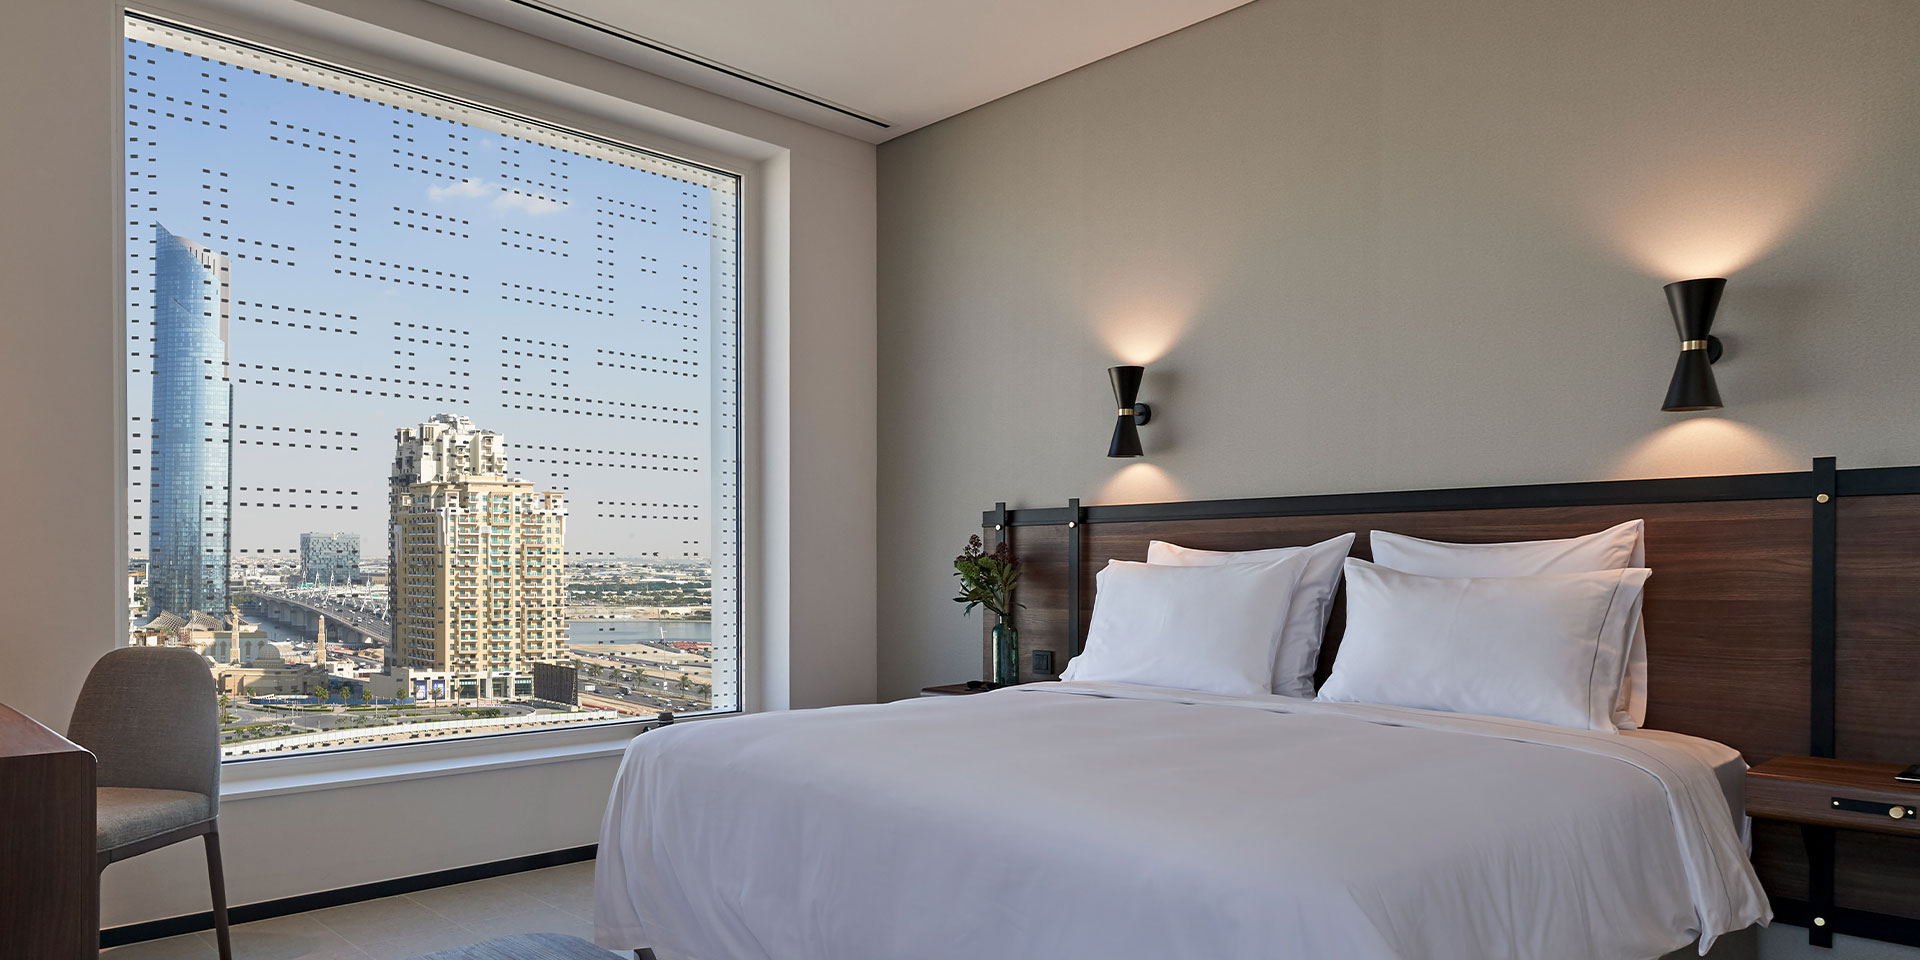 FormHotelDubai-Dubai-UnitedArabEmirates-MiddleEast-rooms.jpg